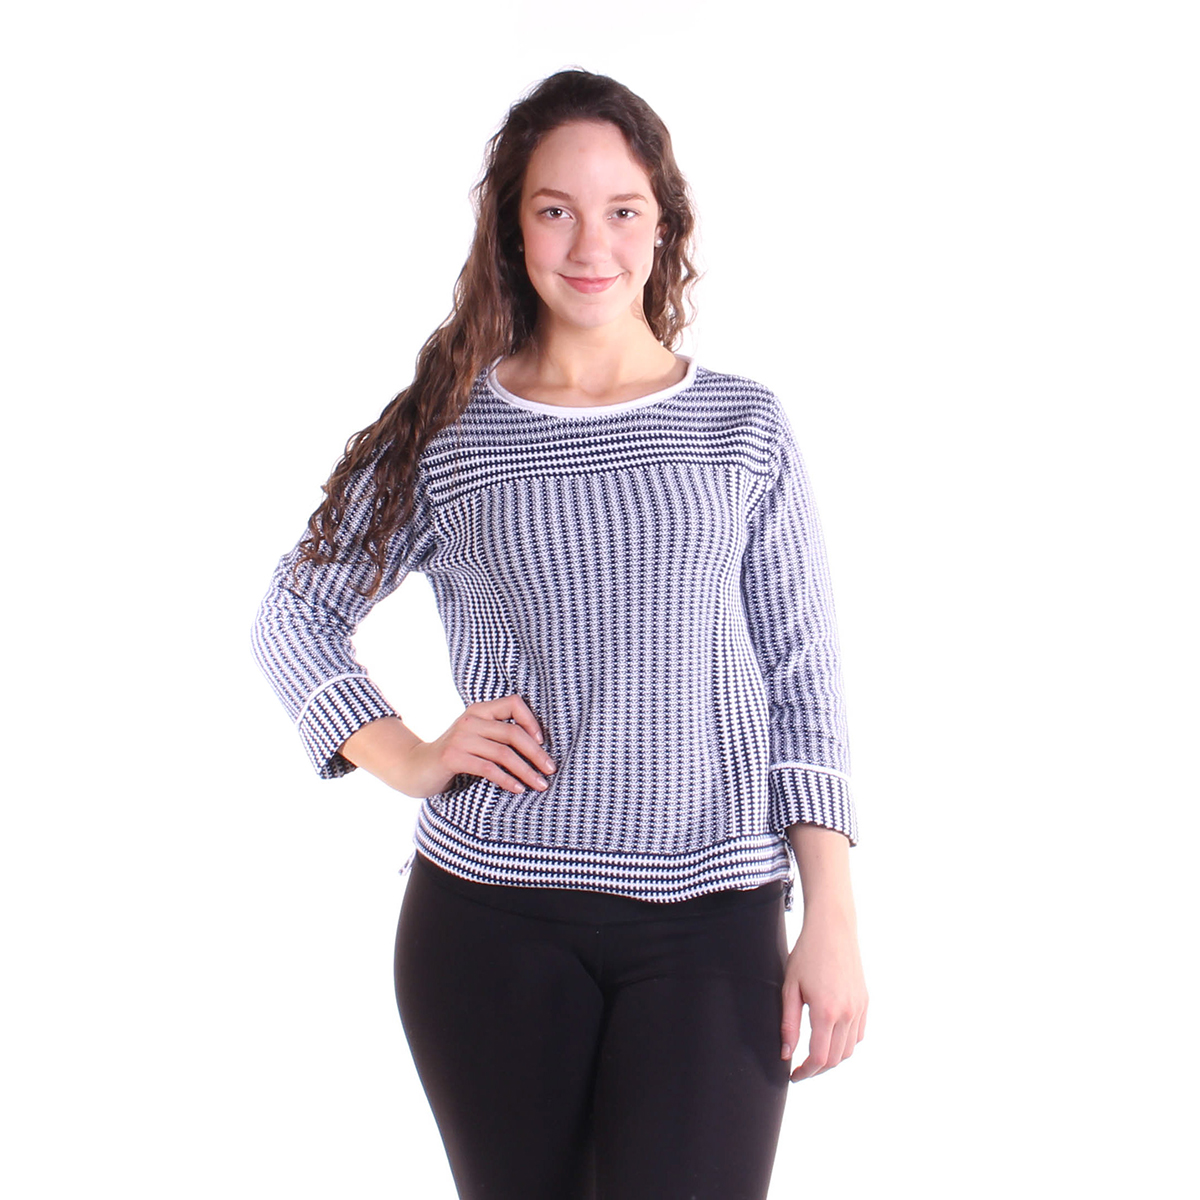 Habitat Women's Boxy Crew Sweater